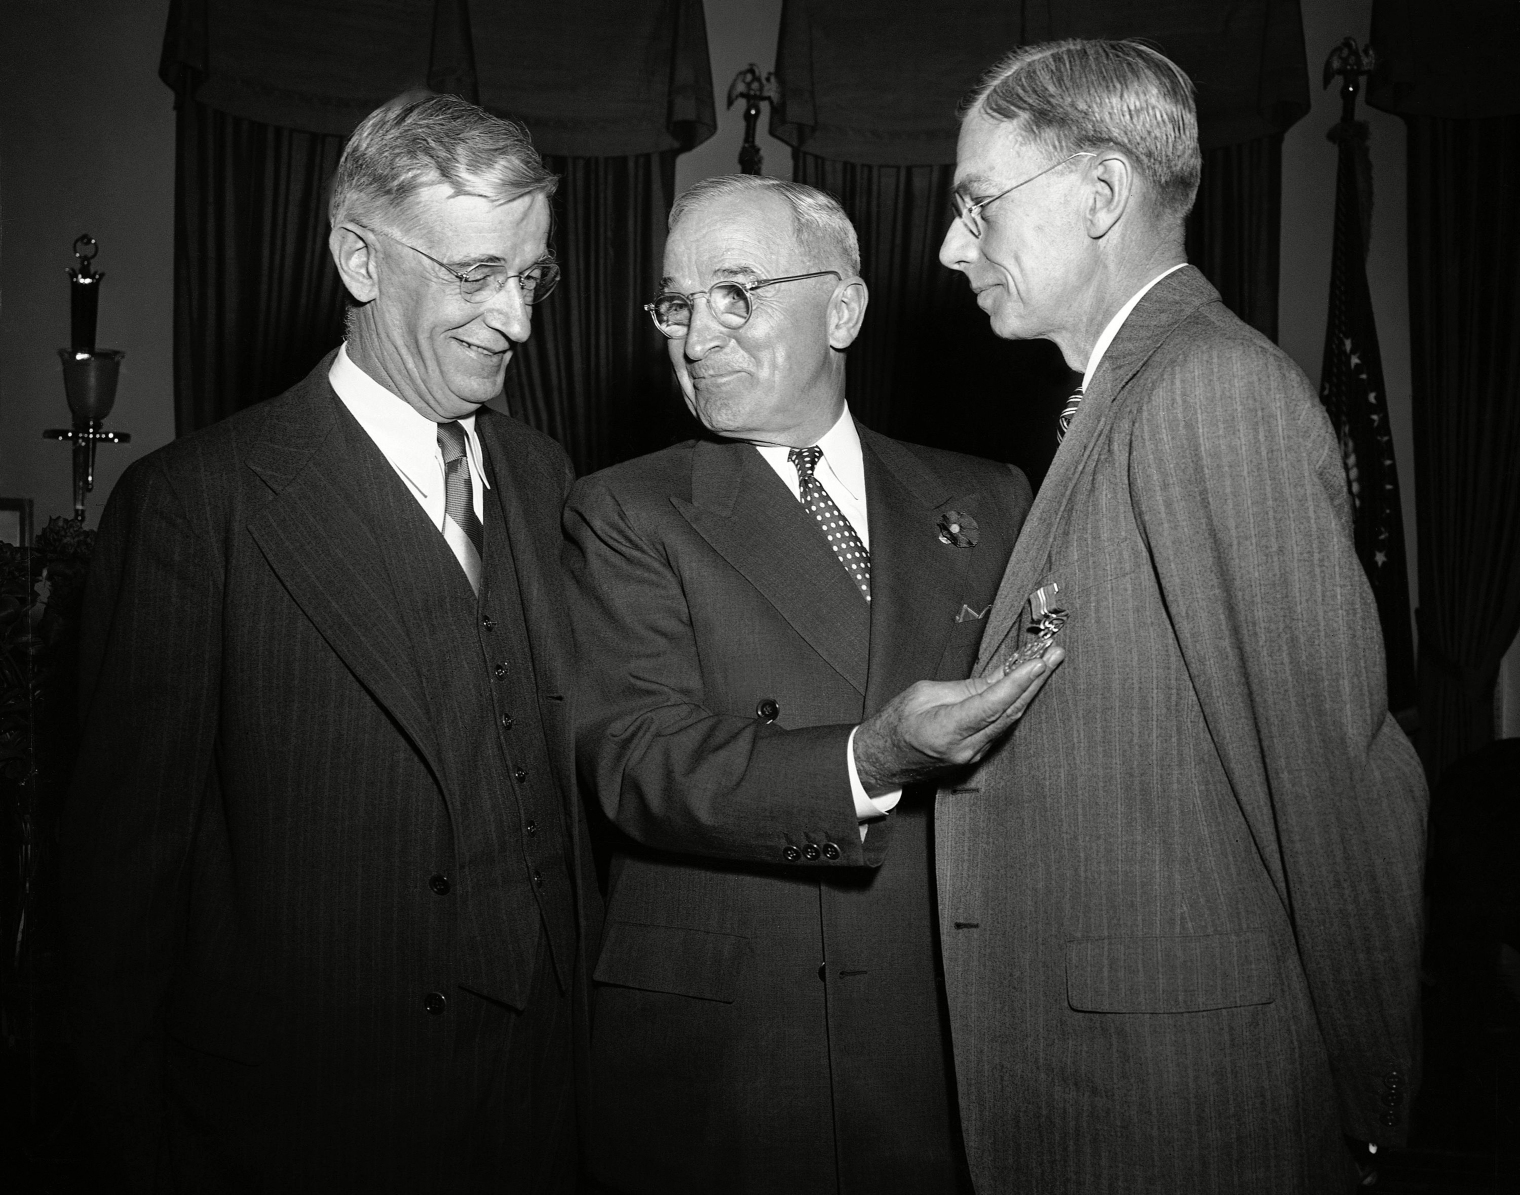 President Harry Truman, center, presents the Medal for Merit to Dr. Vannevar Bush, left, and Dr. James Bryant Conant, right, for their atomic research.